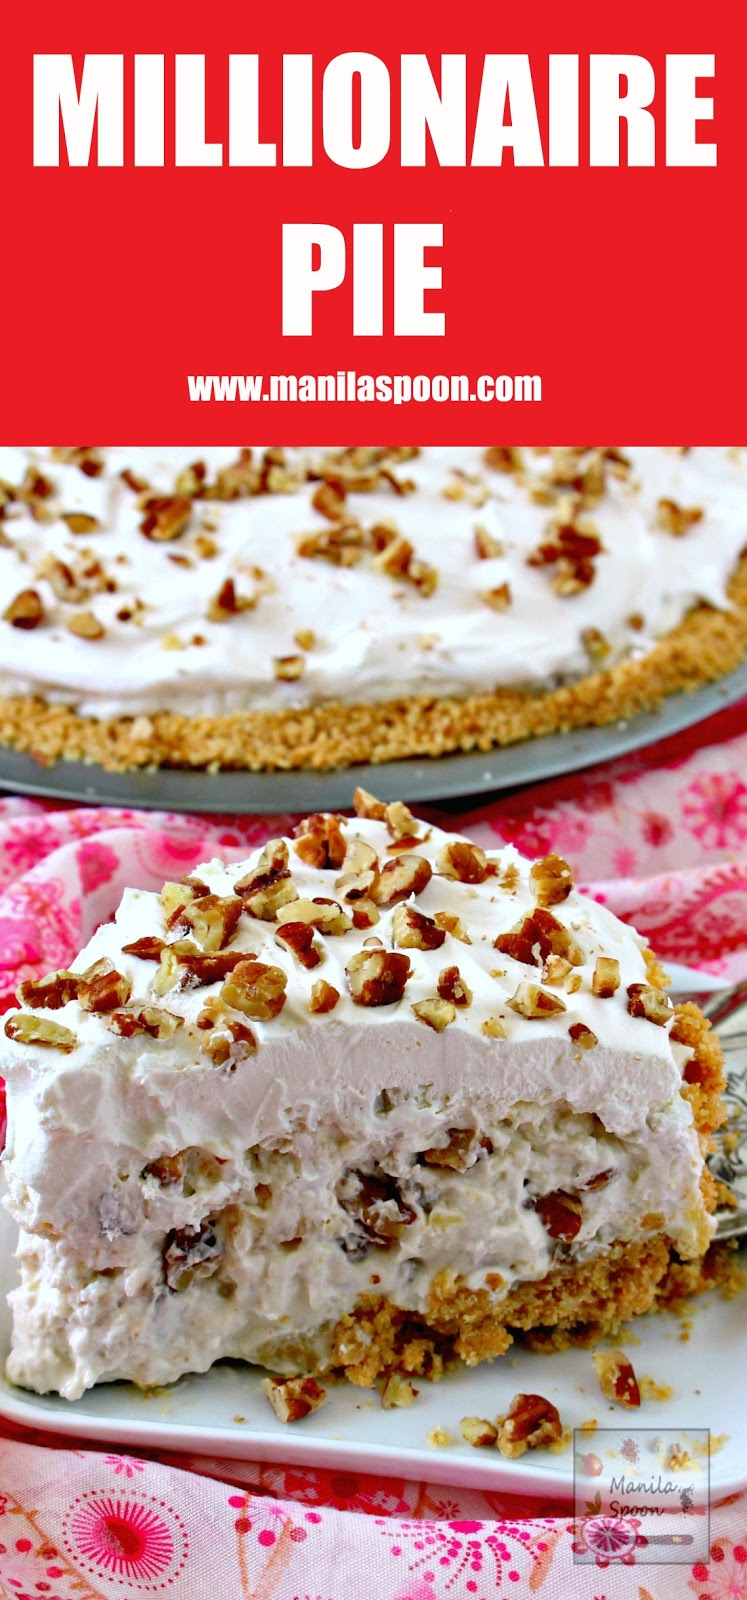 IIn 15 minutes or less you can make this easy and yummy classic pie that's creamy, fruity-sweet, light and no bake, too. We served this in a potluck and it was a huge hit! Perfect for Christmas and New Year celebrations!! | manilaspoon.com